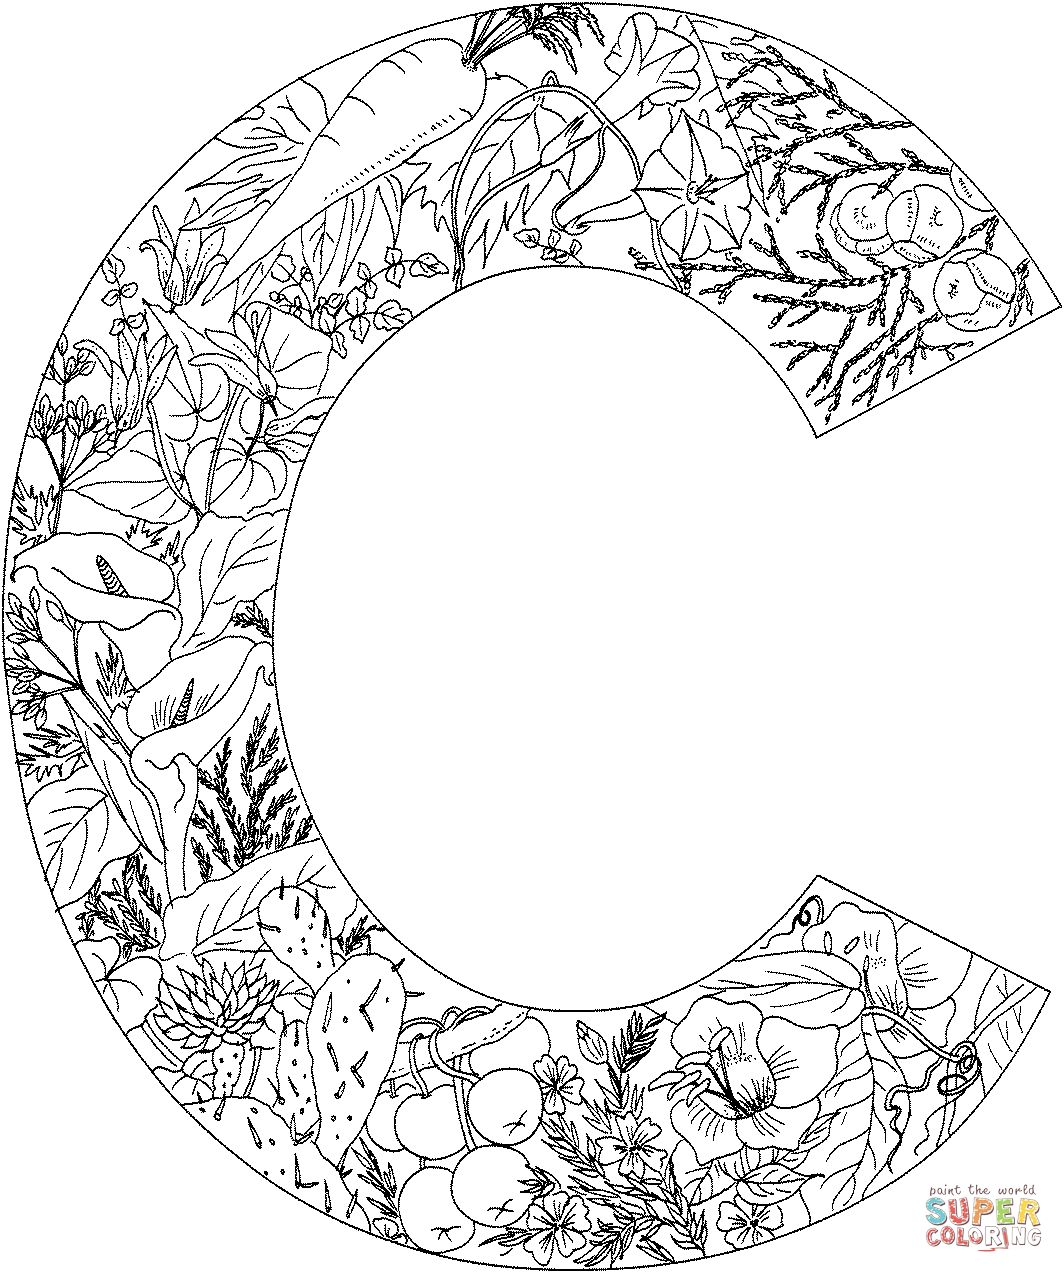 coloring worksheets hard hard coloring pages of animals part 2 free resource hard coloring worksheets